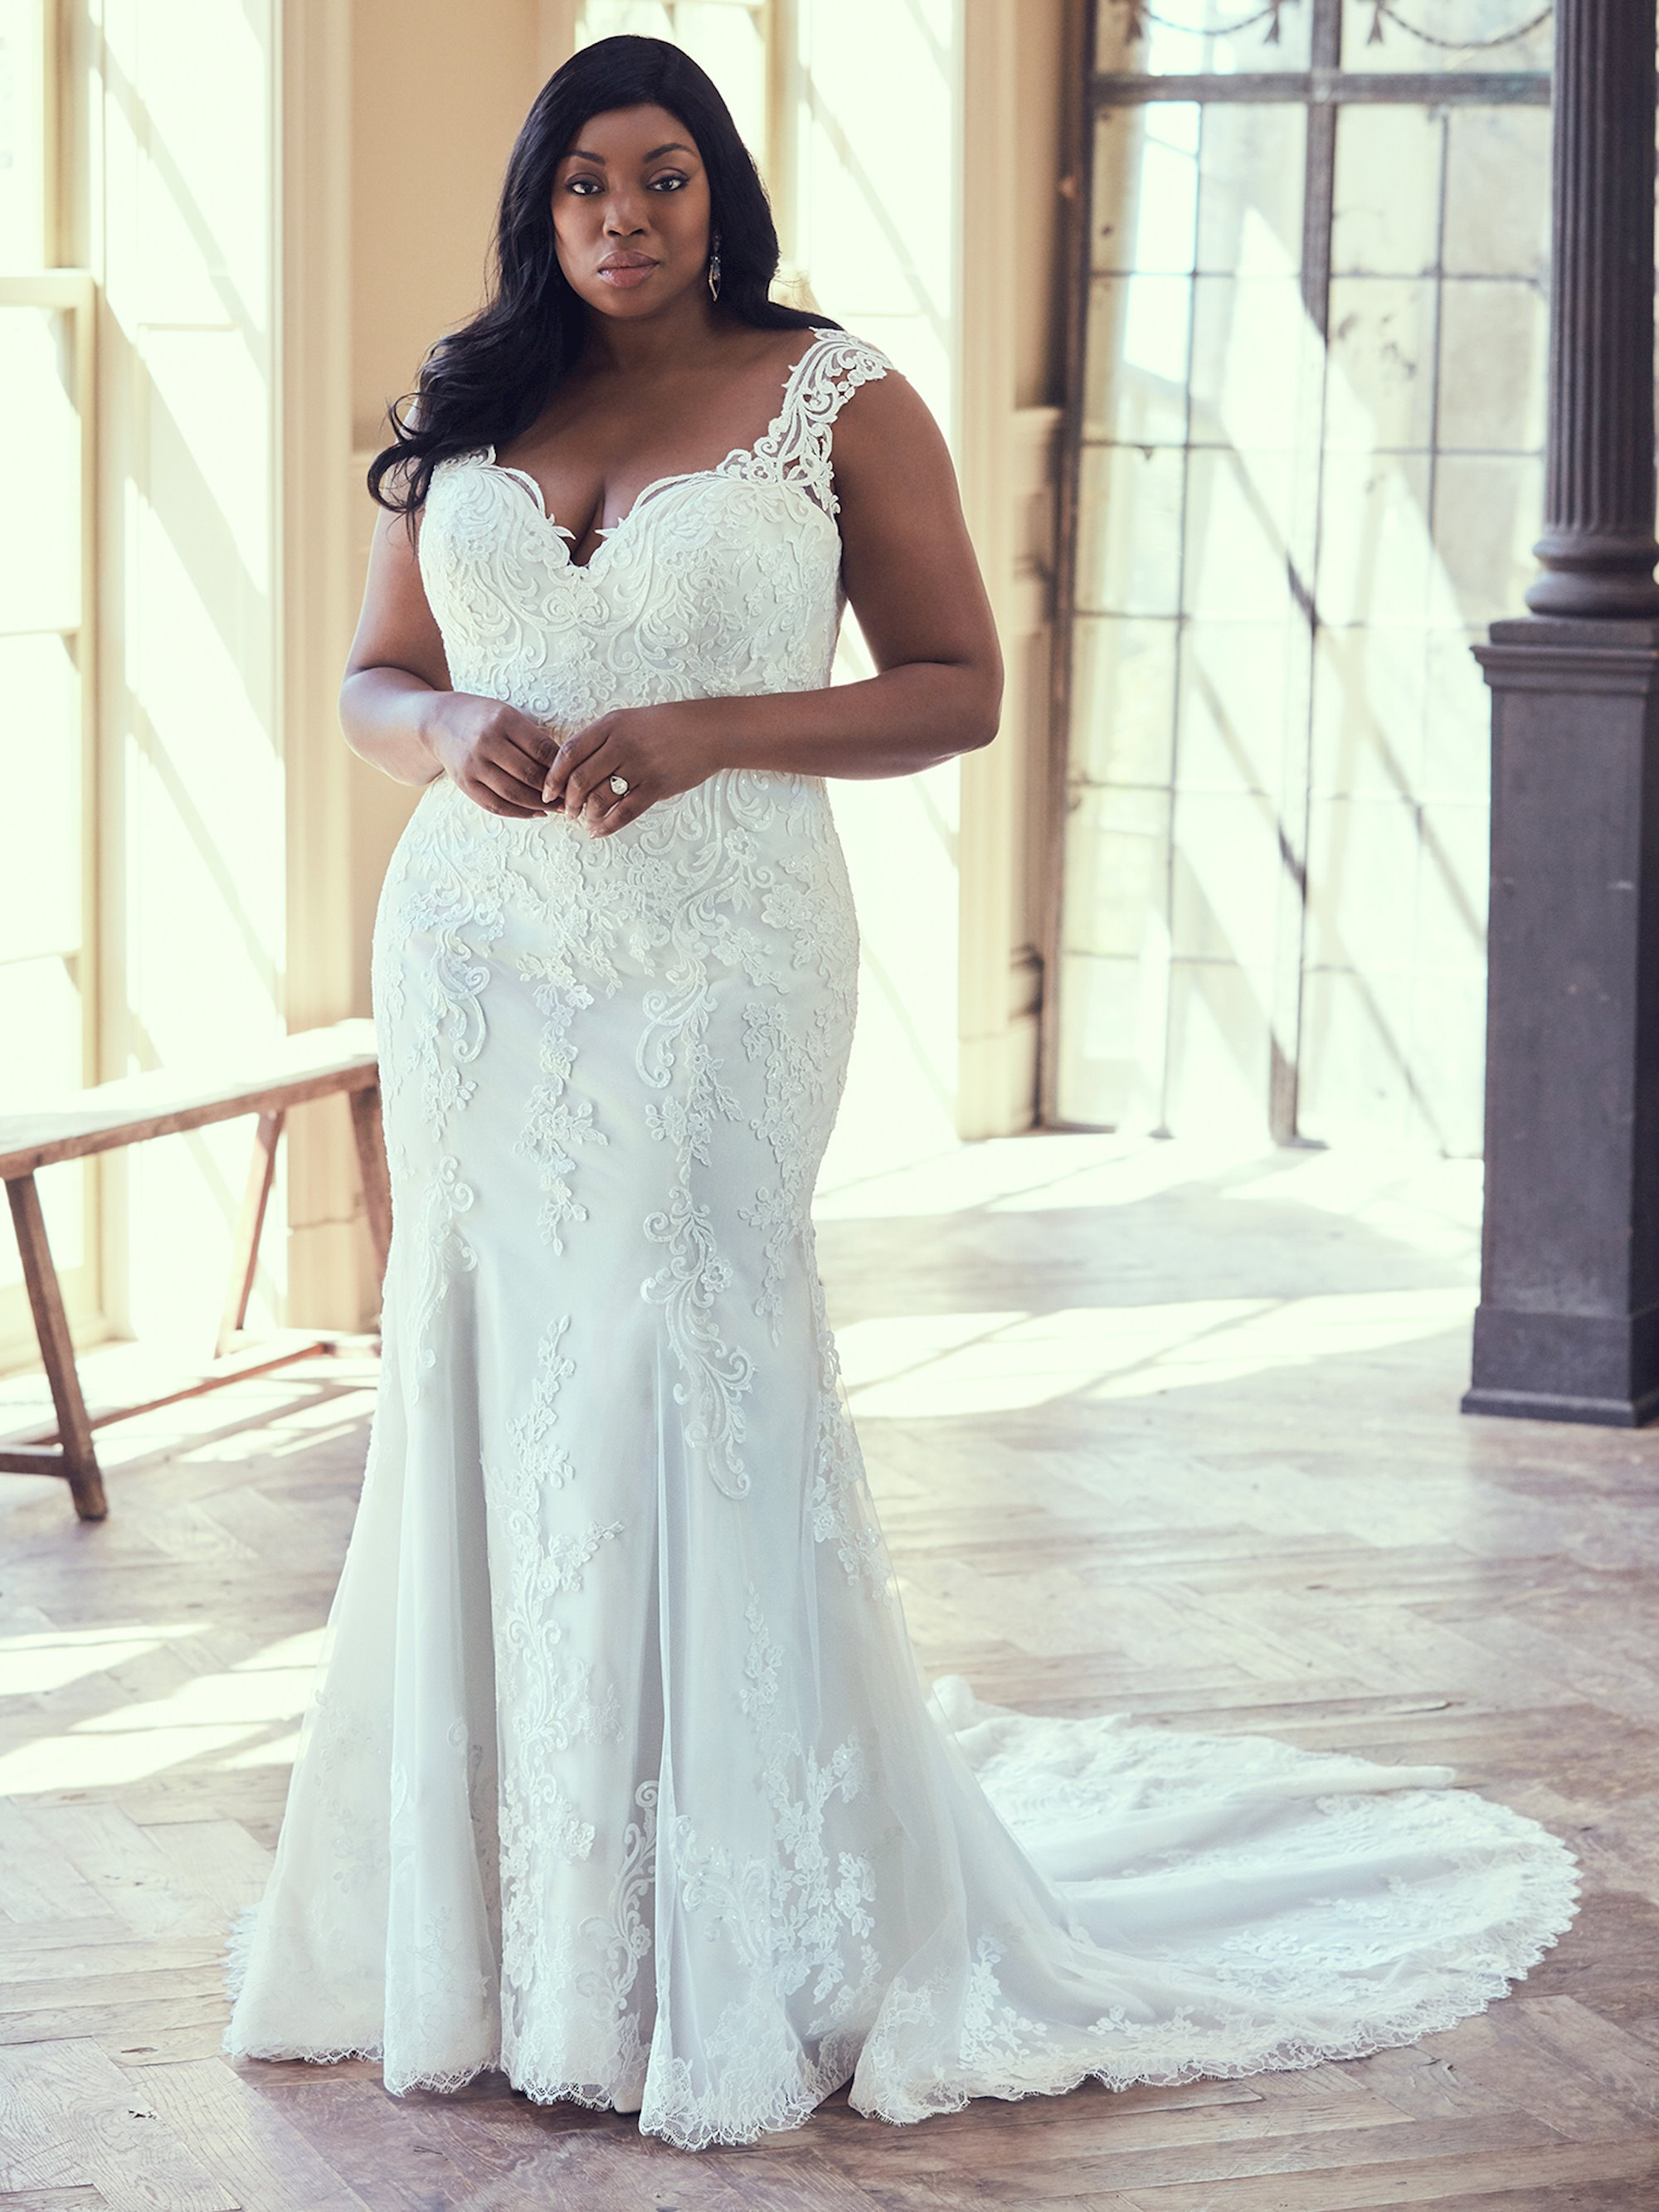 Plus size wedding dresses - a woman in a beautiful wedding dress